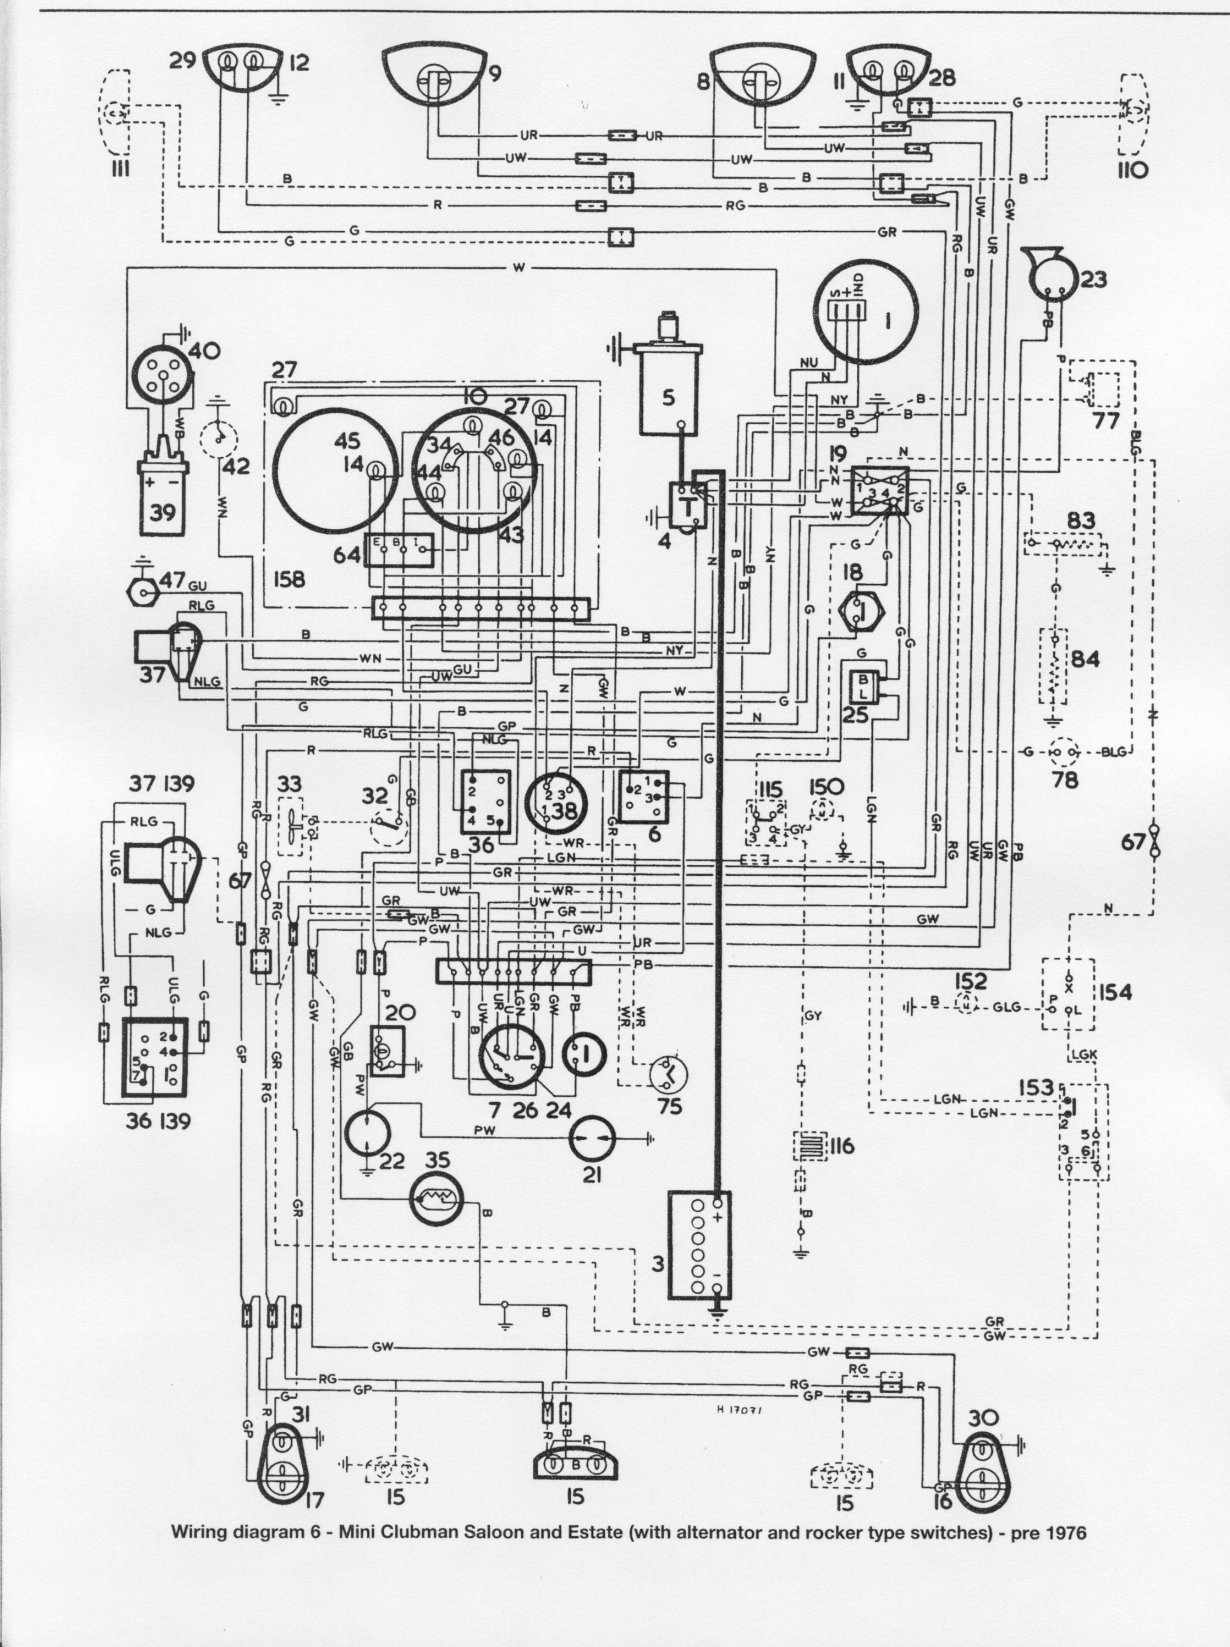 Bmw 528i Cylinder Head Diagram moreover Jeep Intake Manifold Heater Wiring Diagram together with Bmw M54 Engine Diagram together with Bmw E30 318i Fuse Box in addition Subaru Forester 2 0 1991 Specs And Images. on bmw e90 fuse box location